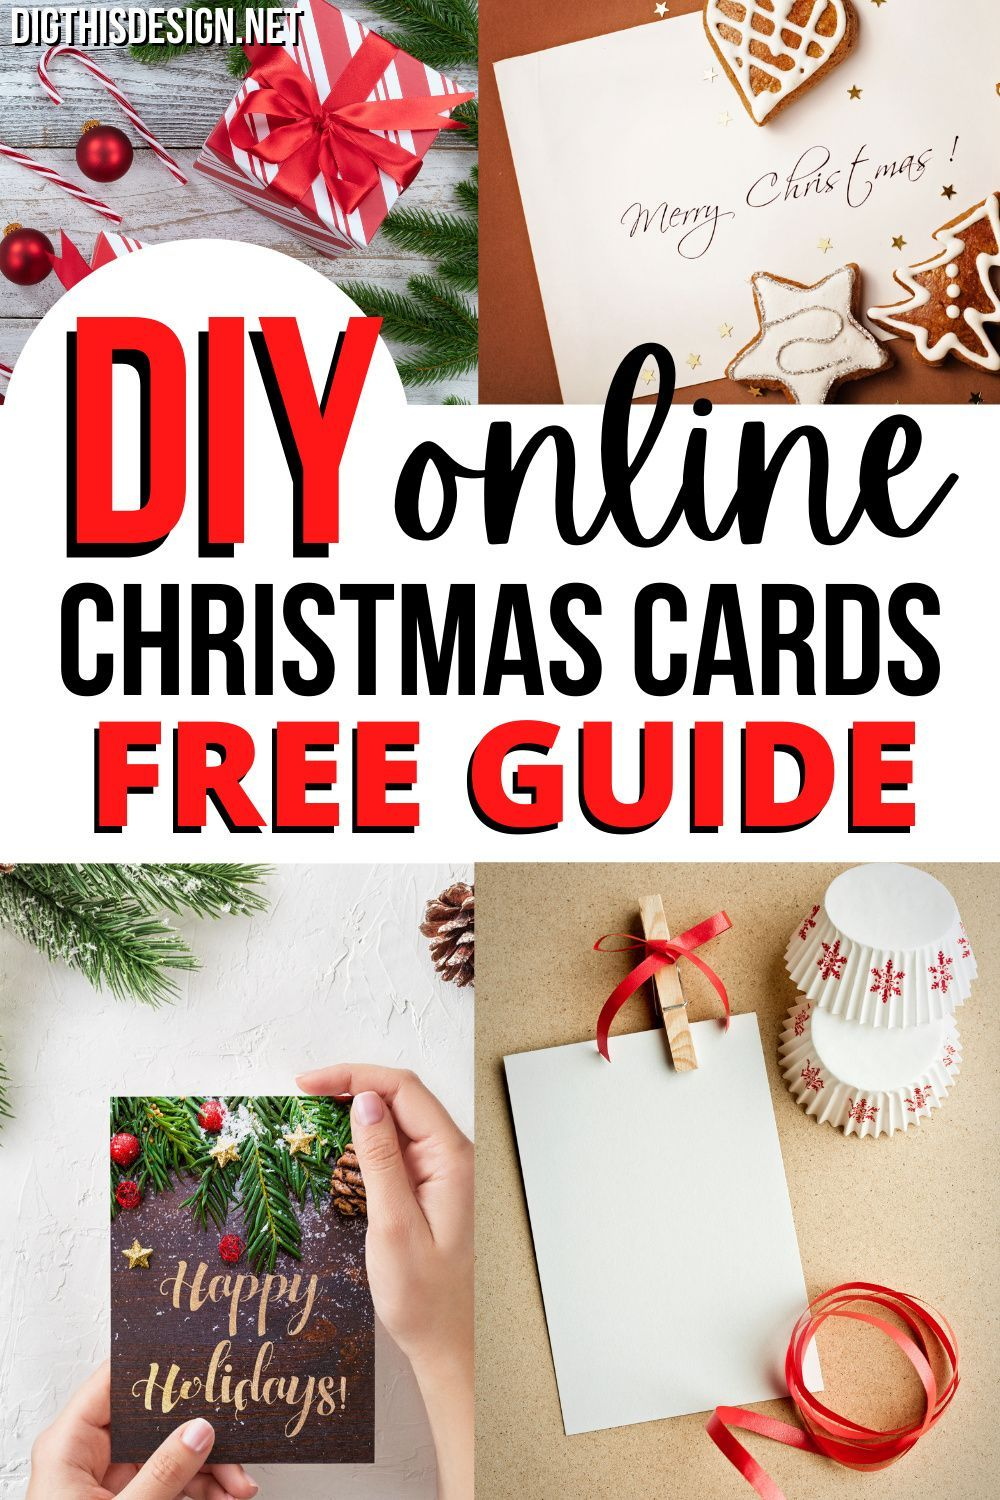 How To Create Your Own Christmas Cards Quickly Online Dig This Design Christmas Cards Free Christmas Card Online Christmas Cards